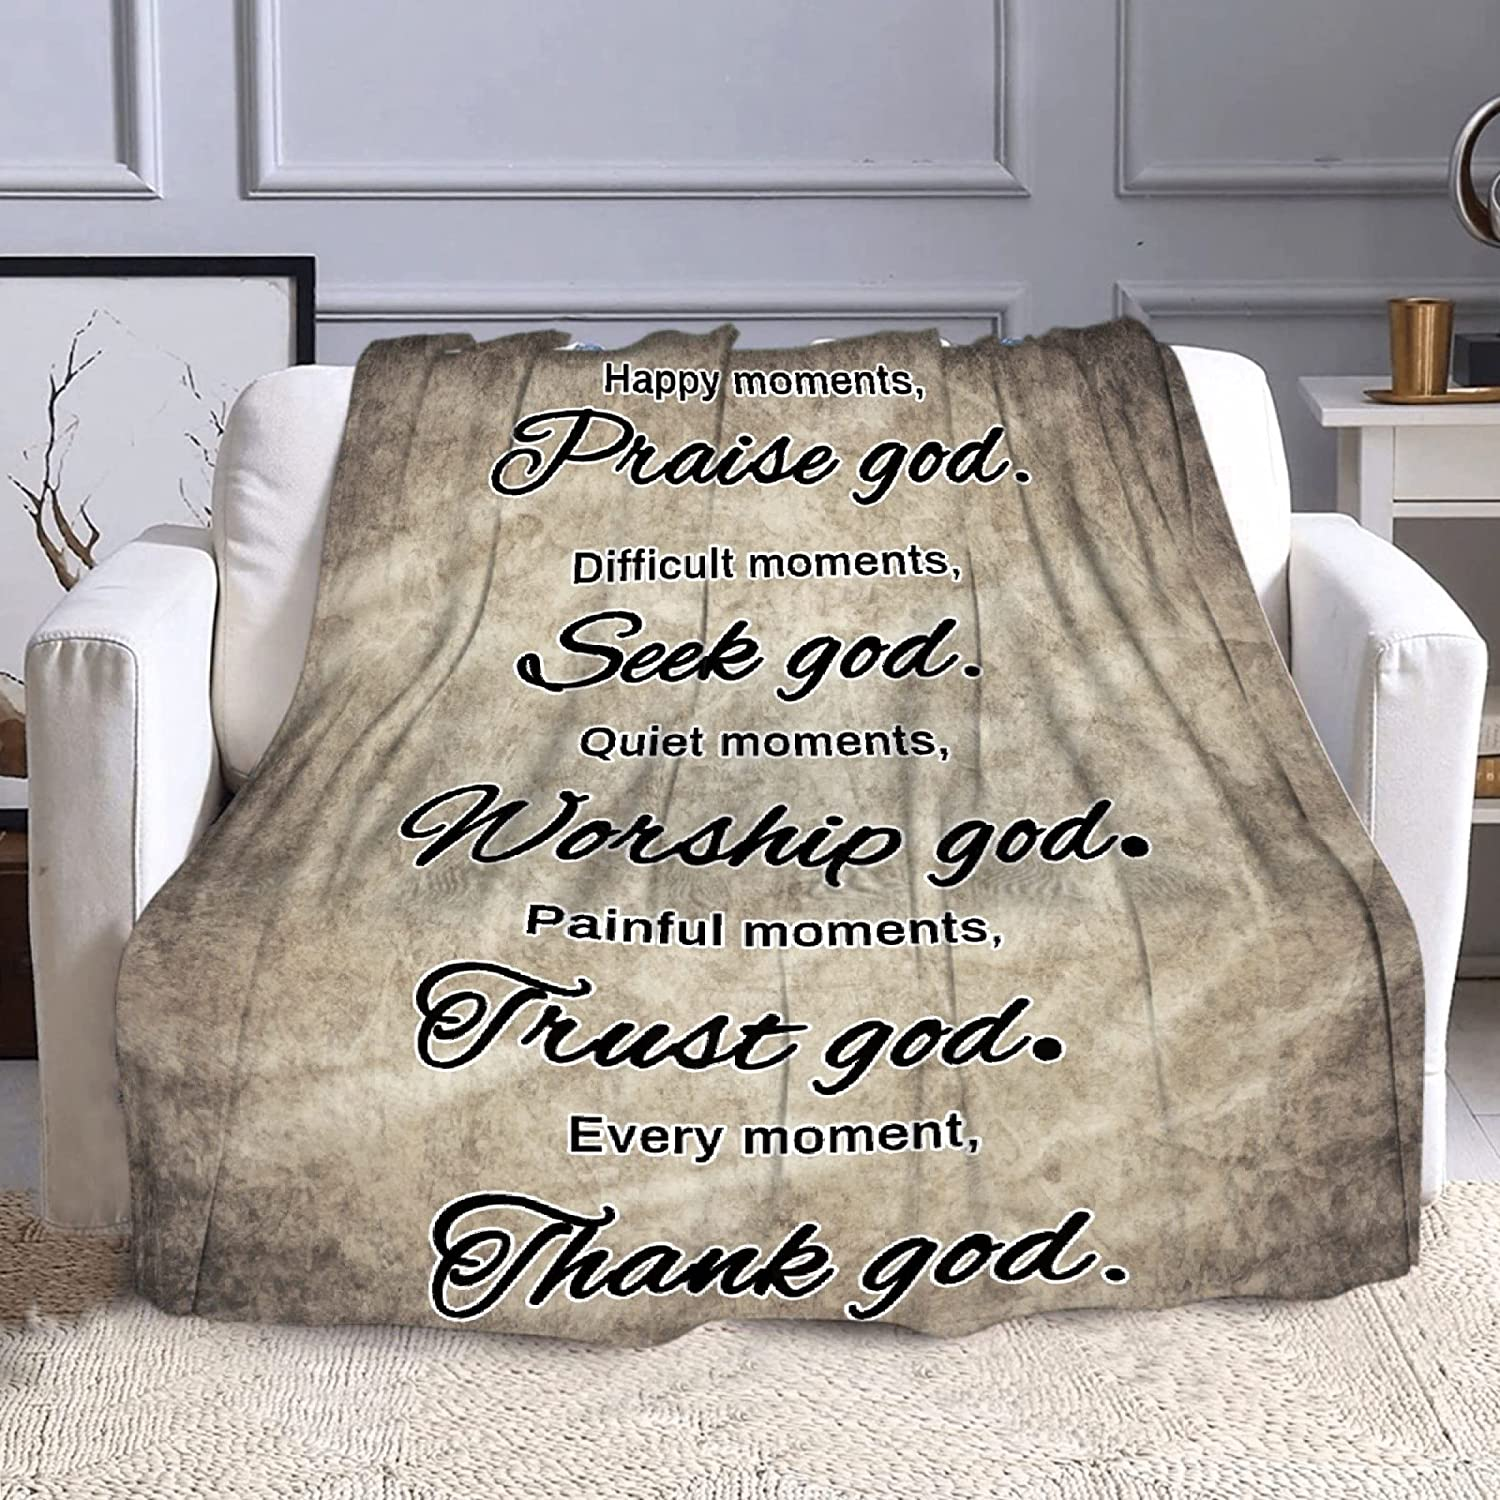 Microfiber Flannel Throw Blanket Thoughts Inspirational OFFicial Healing Max 52% OFF